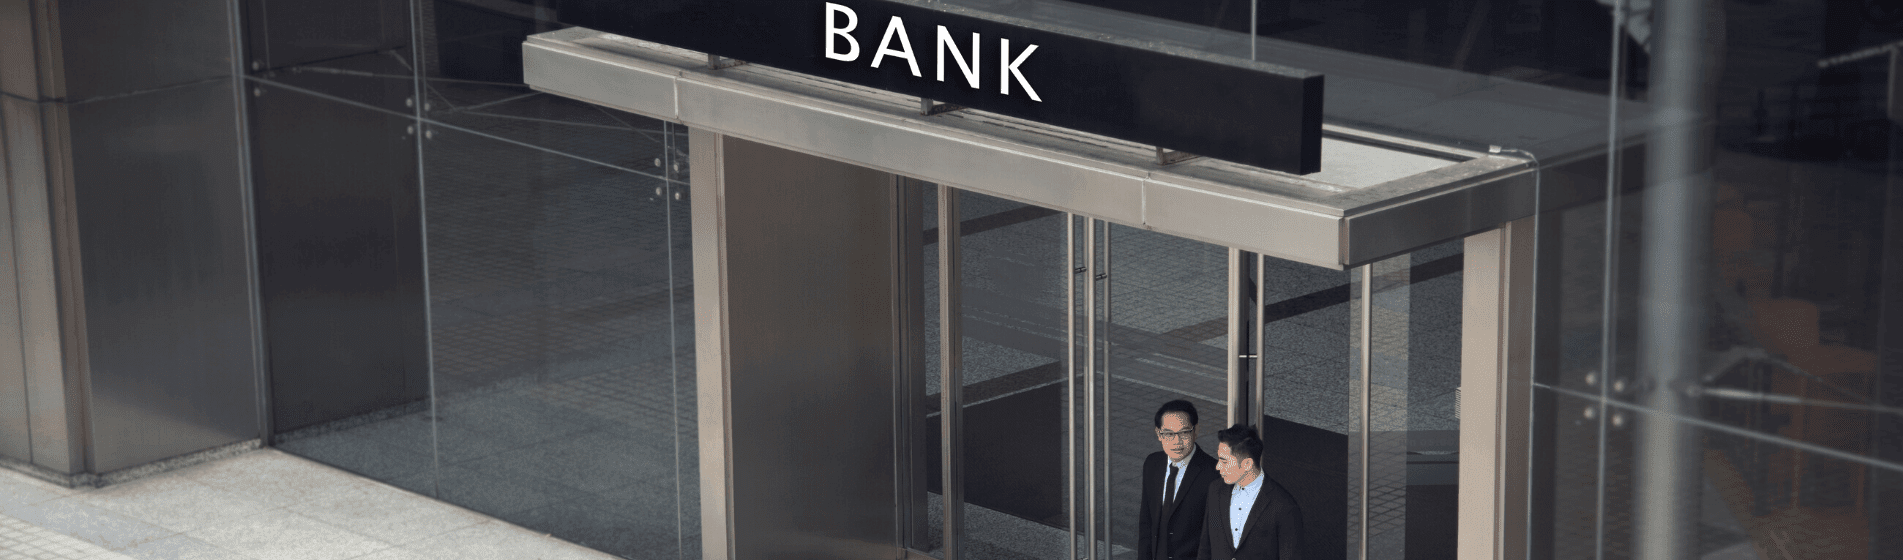 Expats: Here's why to close your US bank accounts and go offshore